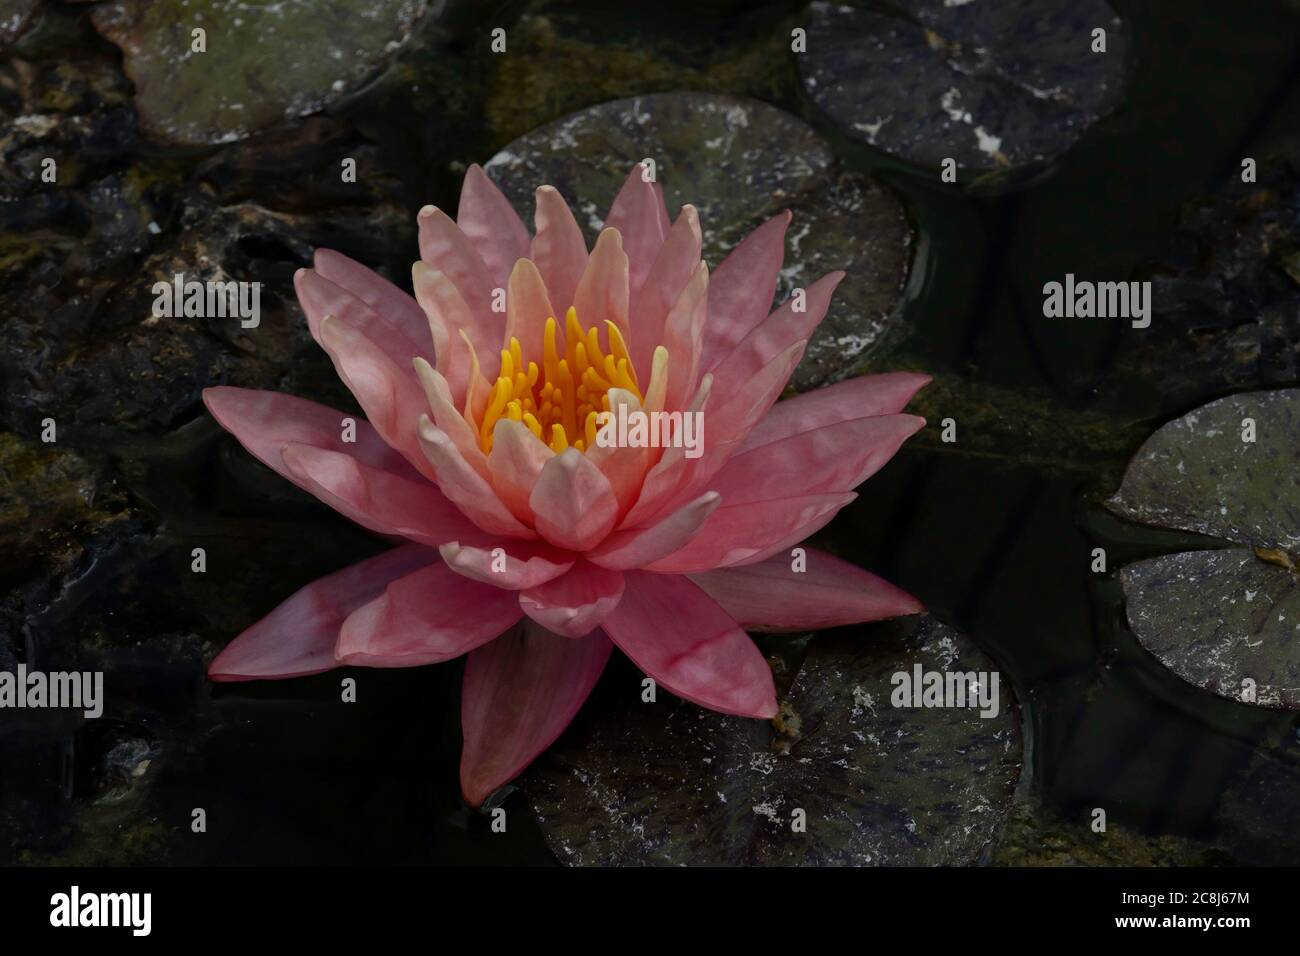 A pink water lily with yellow stamens, on a lily pad. Stock Photo